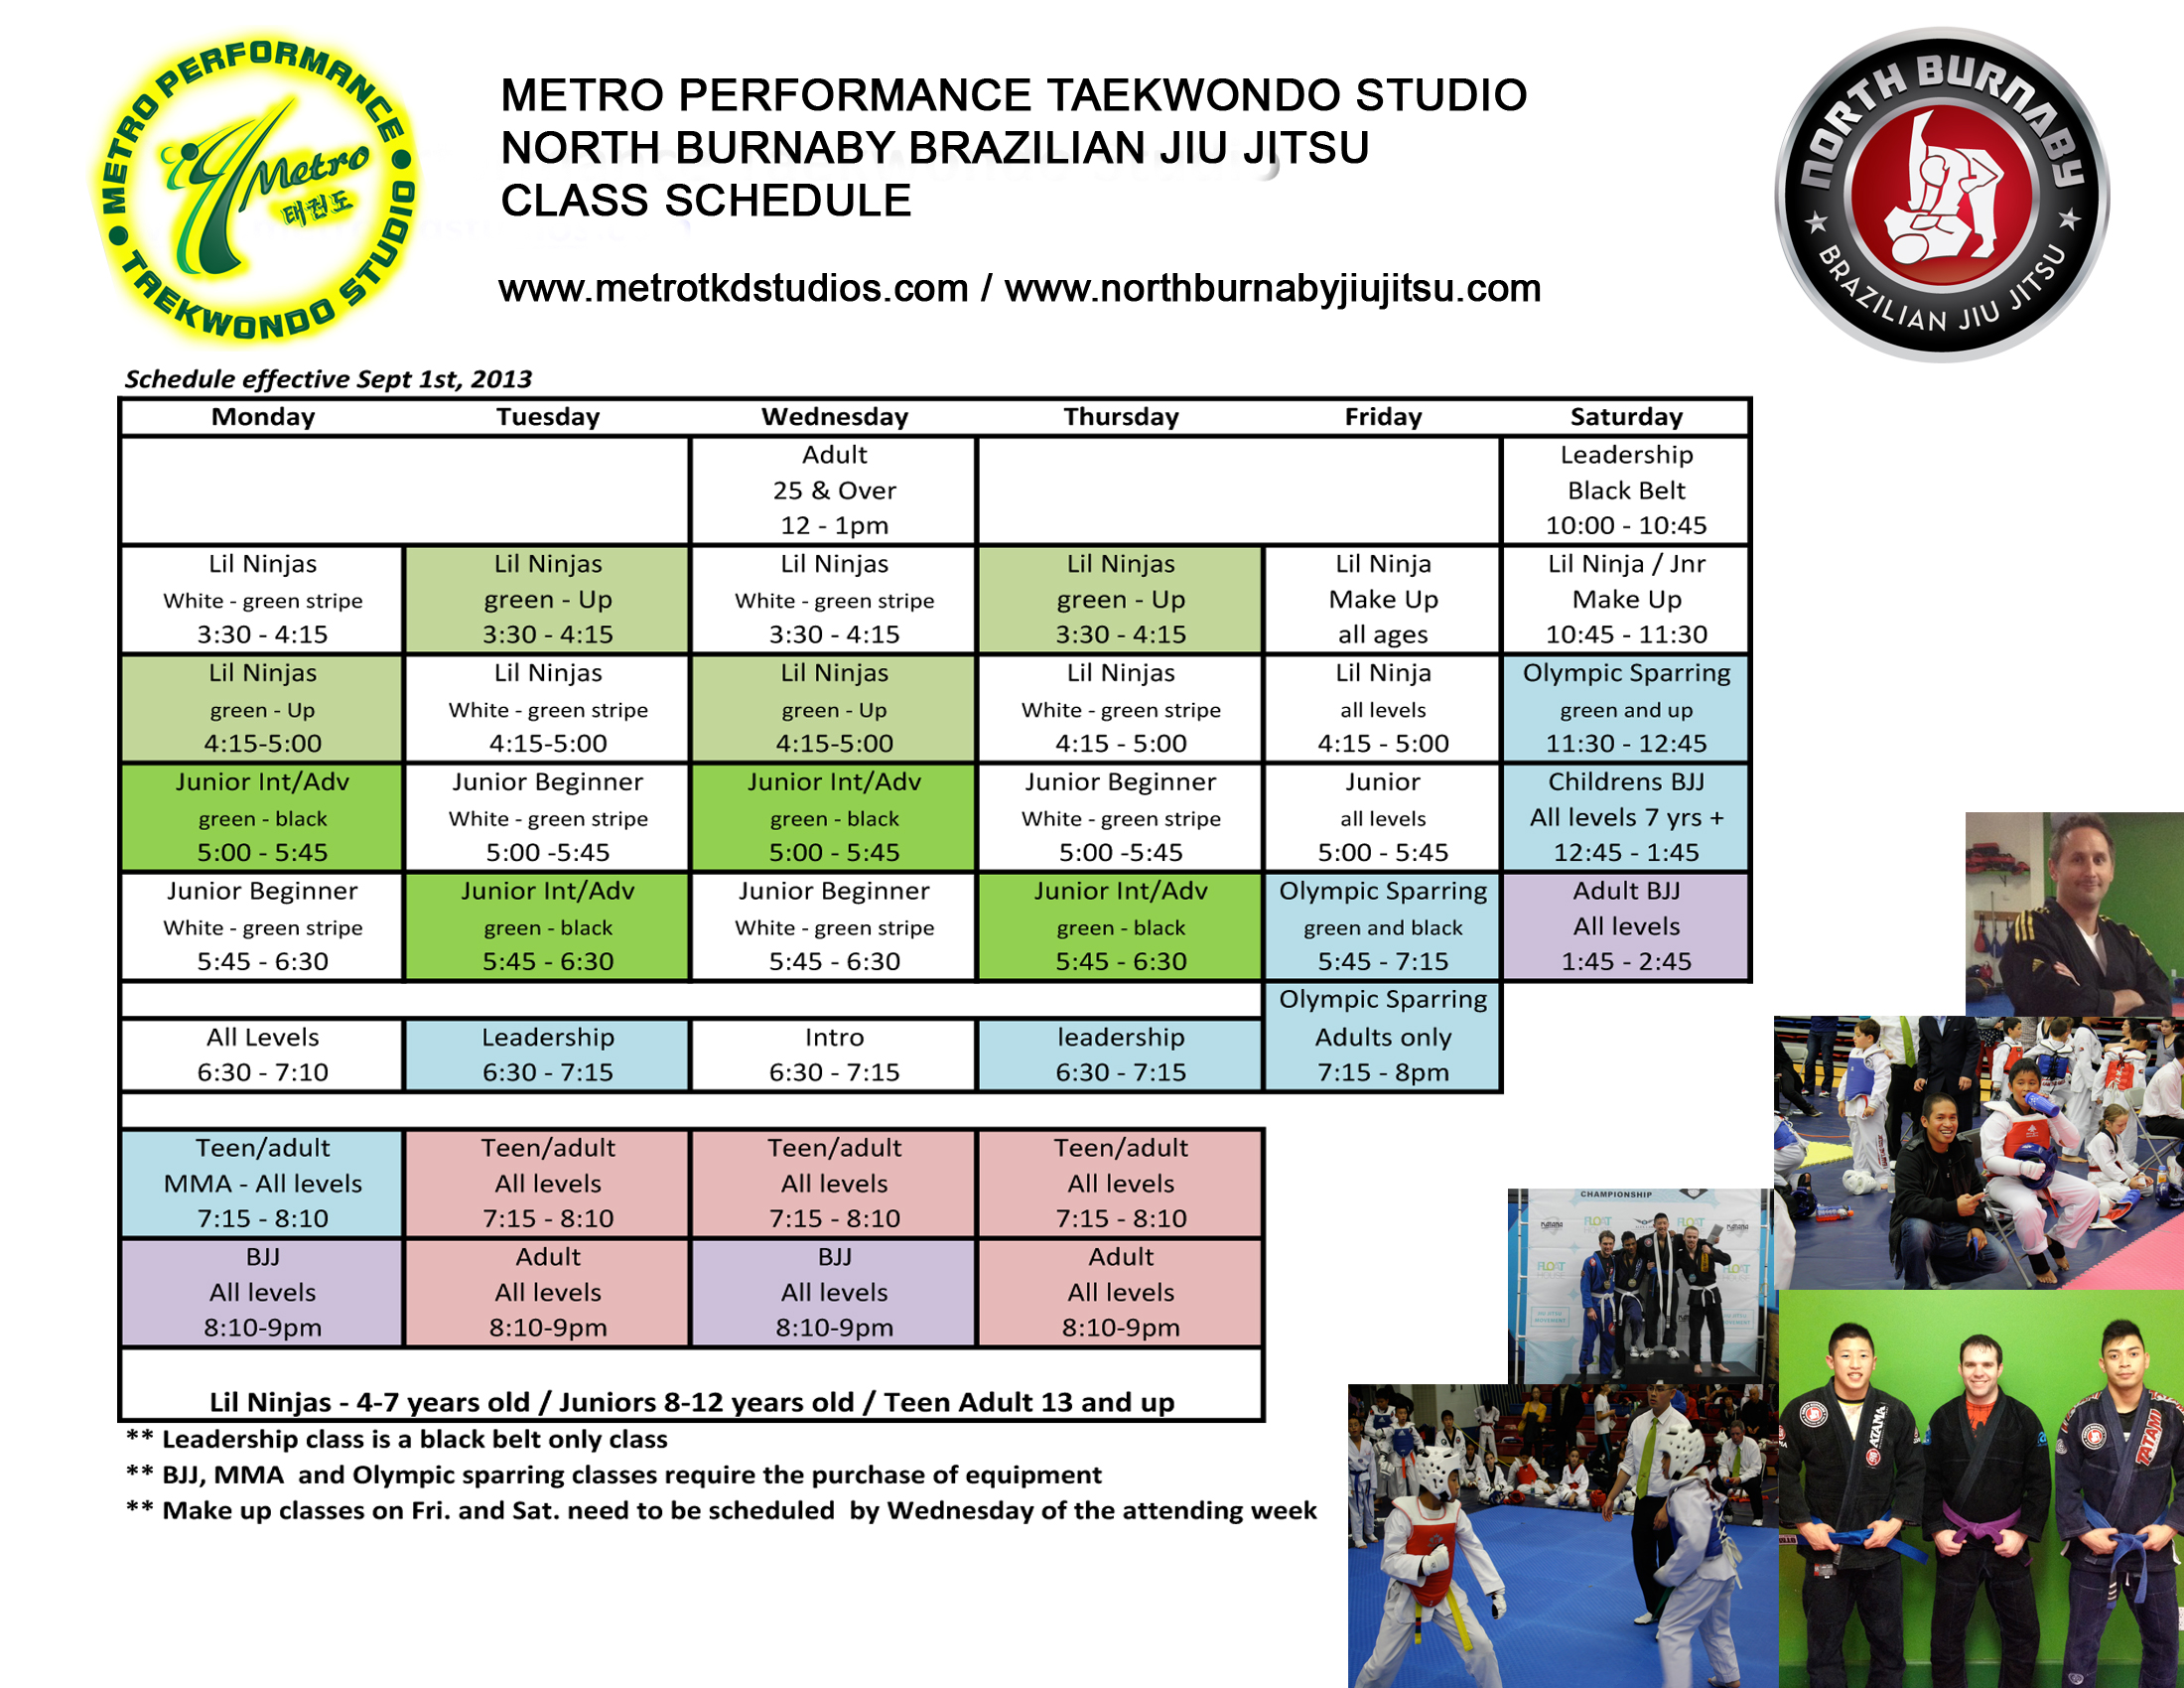 Please note our BJJ classes are mixed in with other martial arts classes. BJJ classes are highlighted in purple. We are also offering a once per week childrens BJJ class on Saturdays at 12:45pm